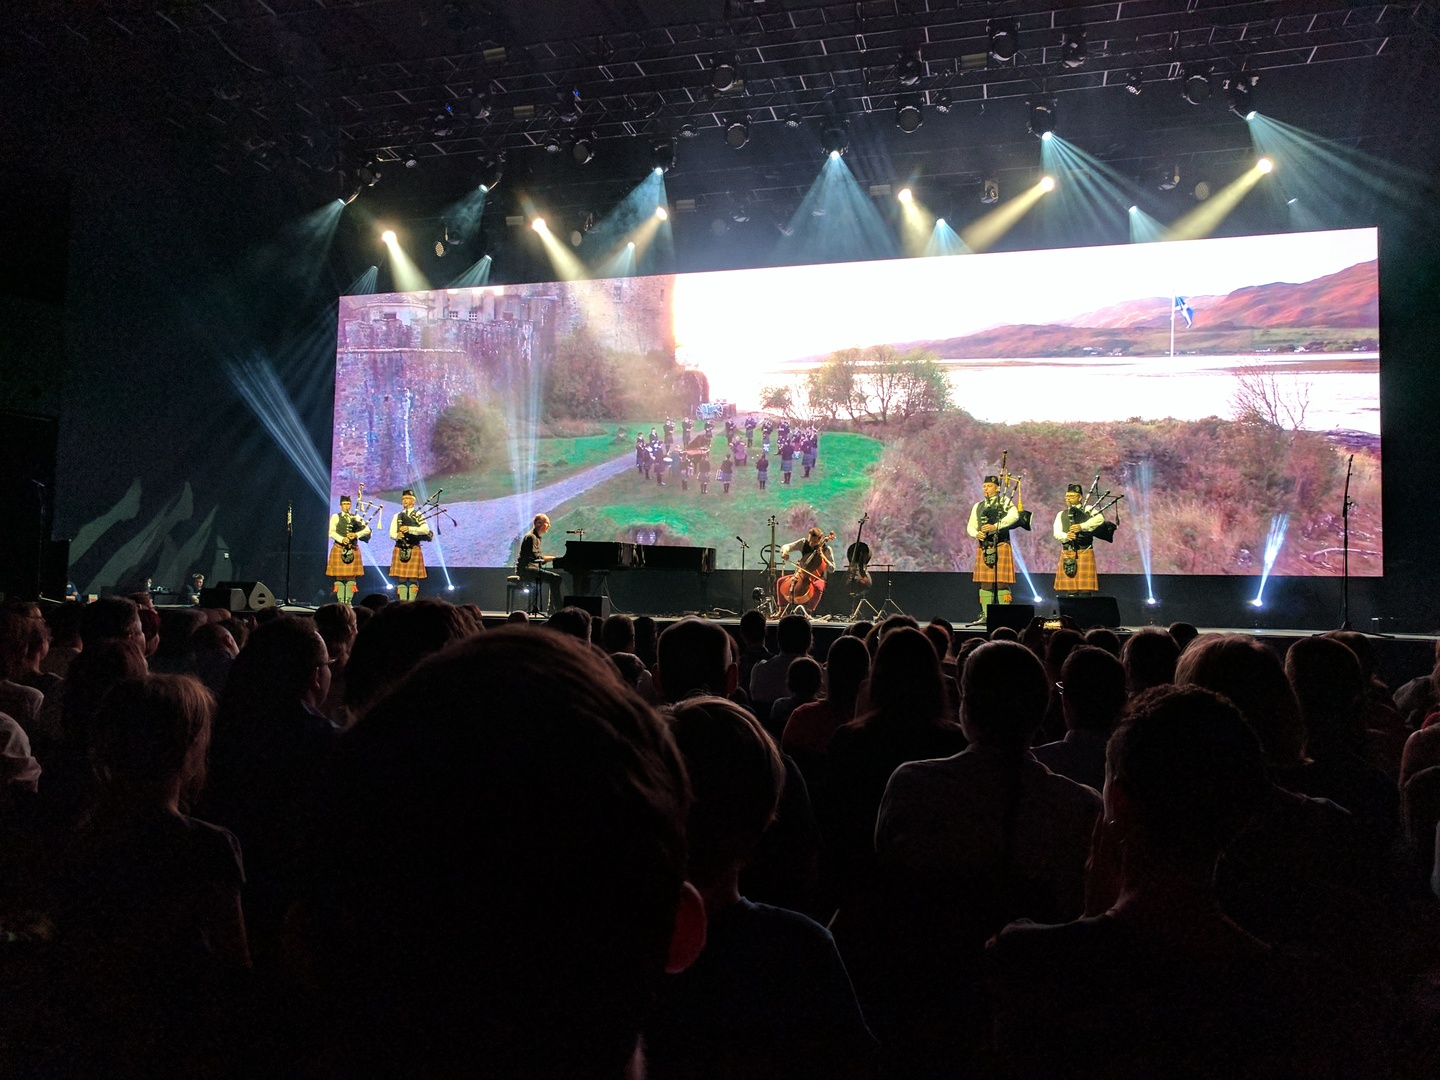 Four bagpipers accompanying the Piano Guys